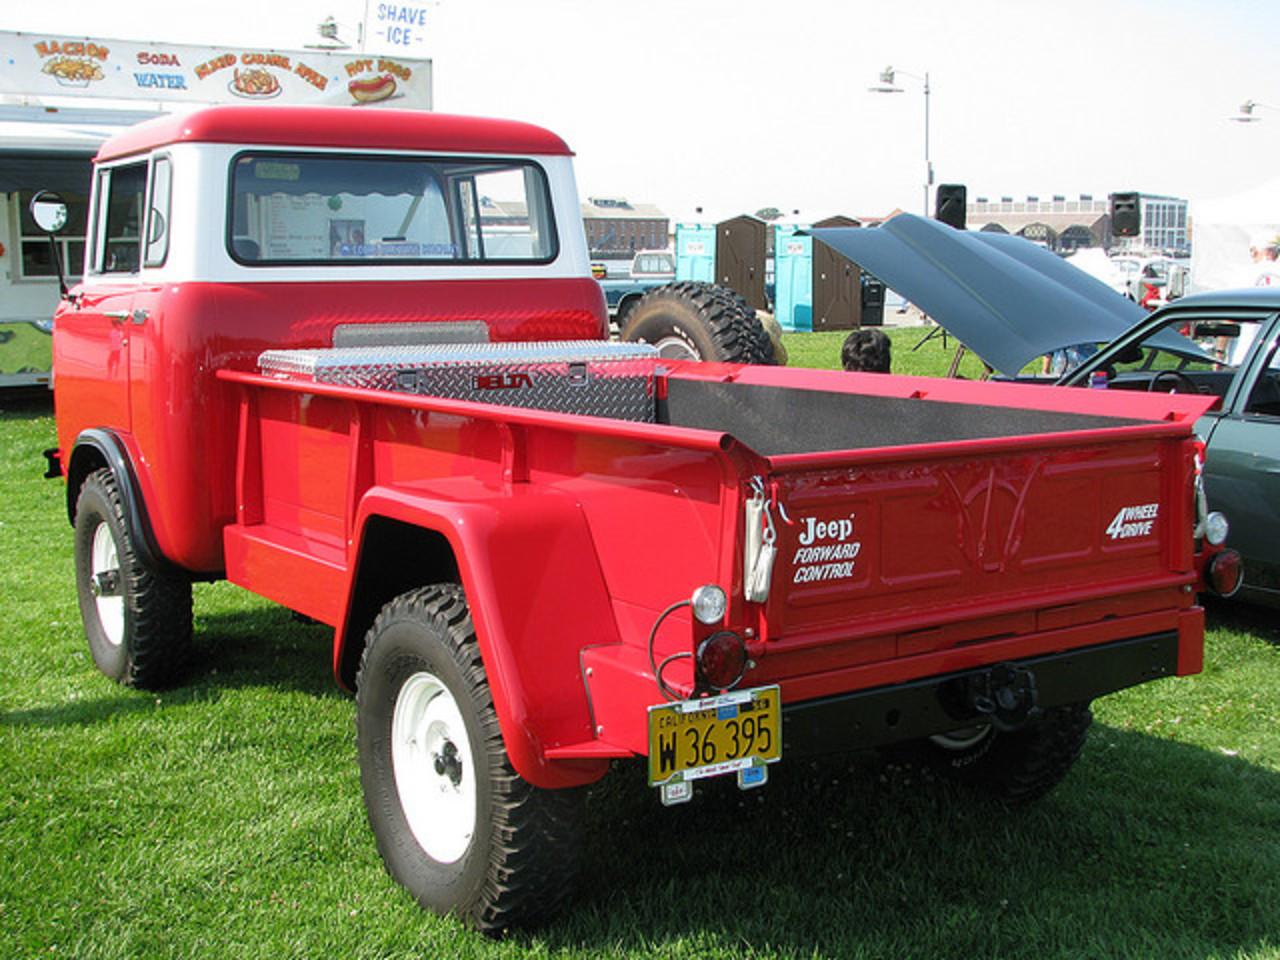 1960 Willys Jeep FC 170 C.O.E. Truck 'W 36 395' 2 | Flickr - Photo ...